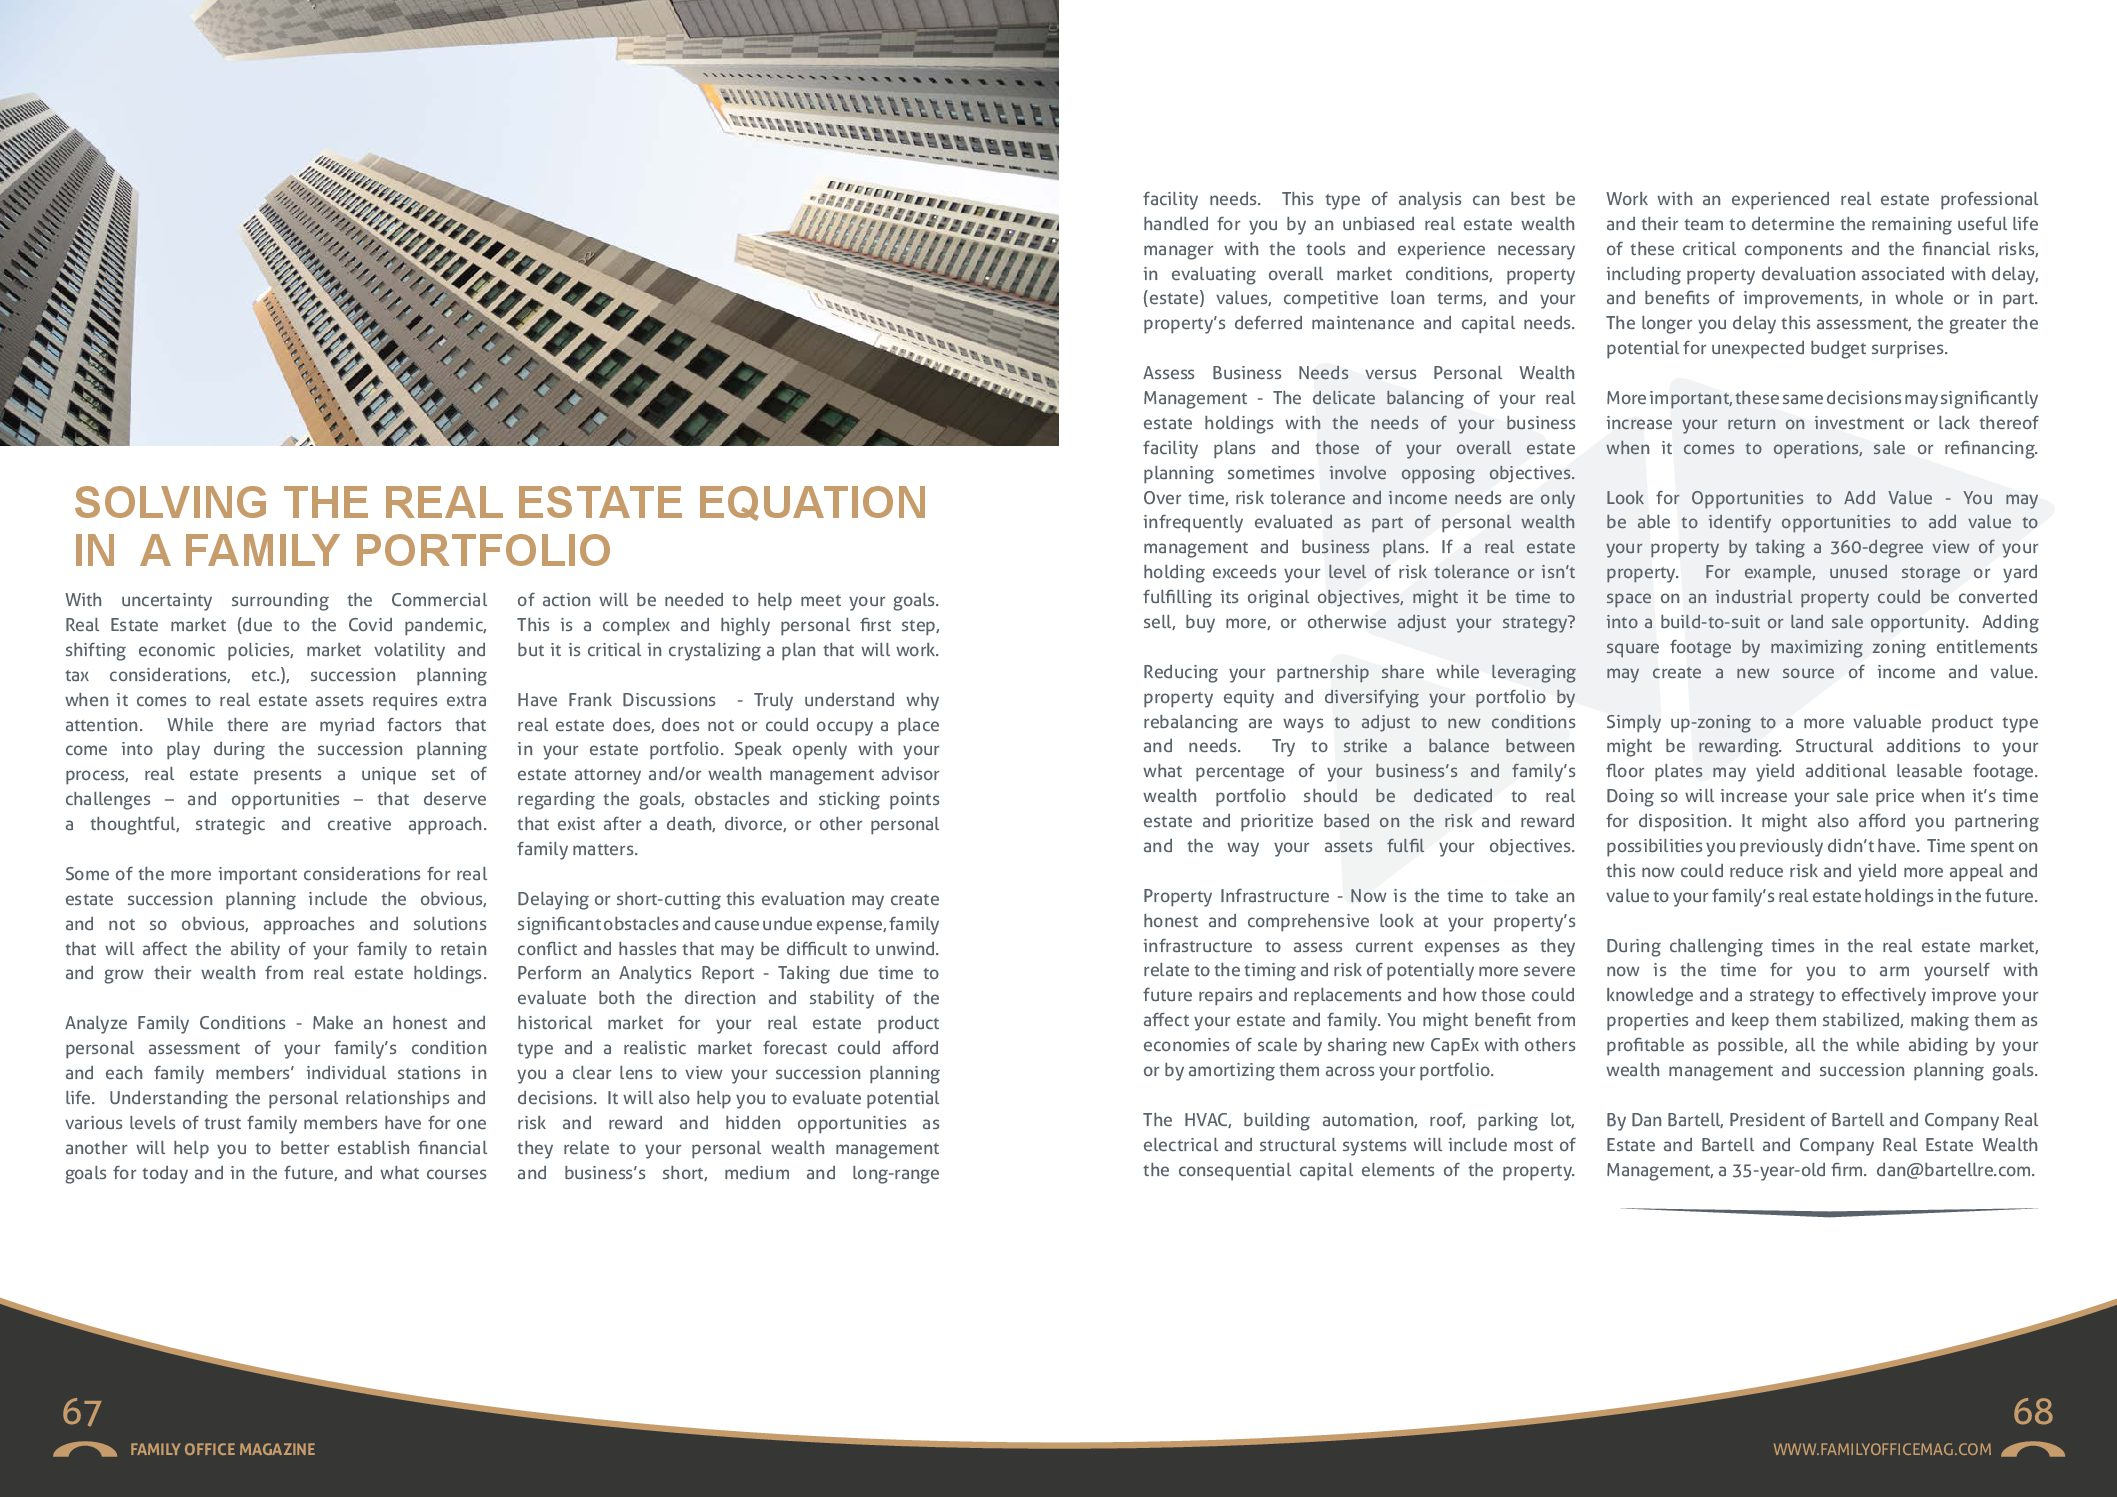 Solving the Real Estate Equation in a Family Portfolio